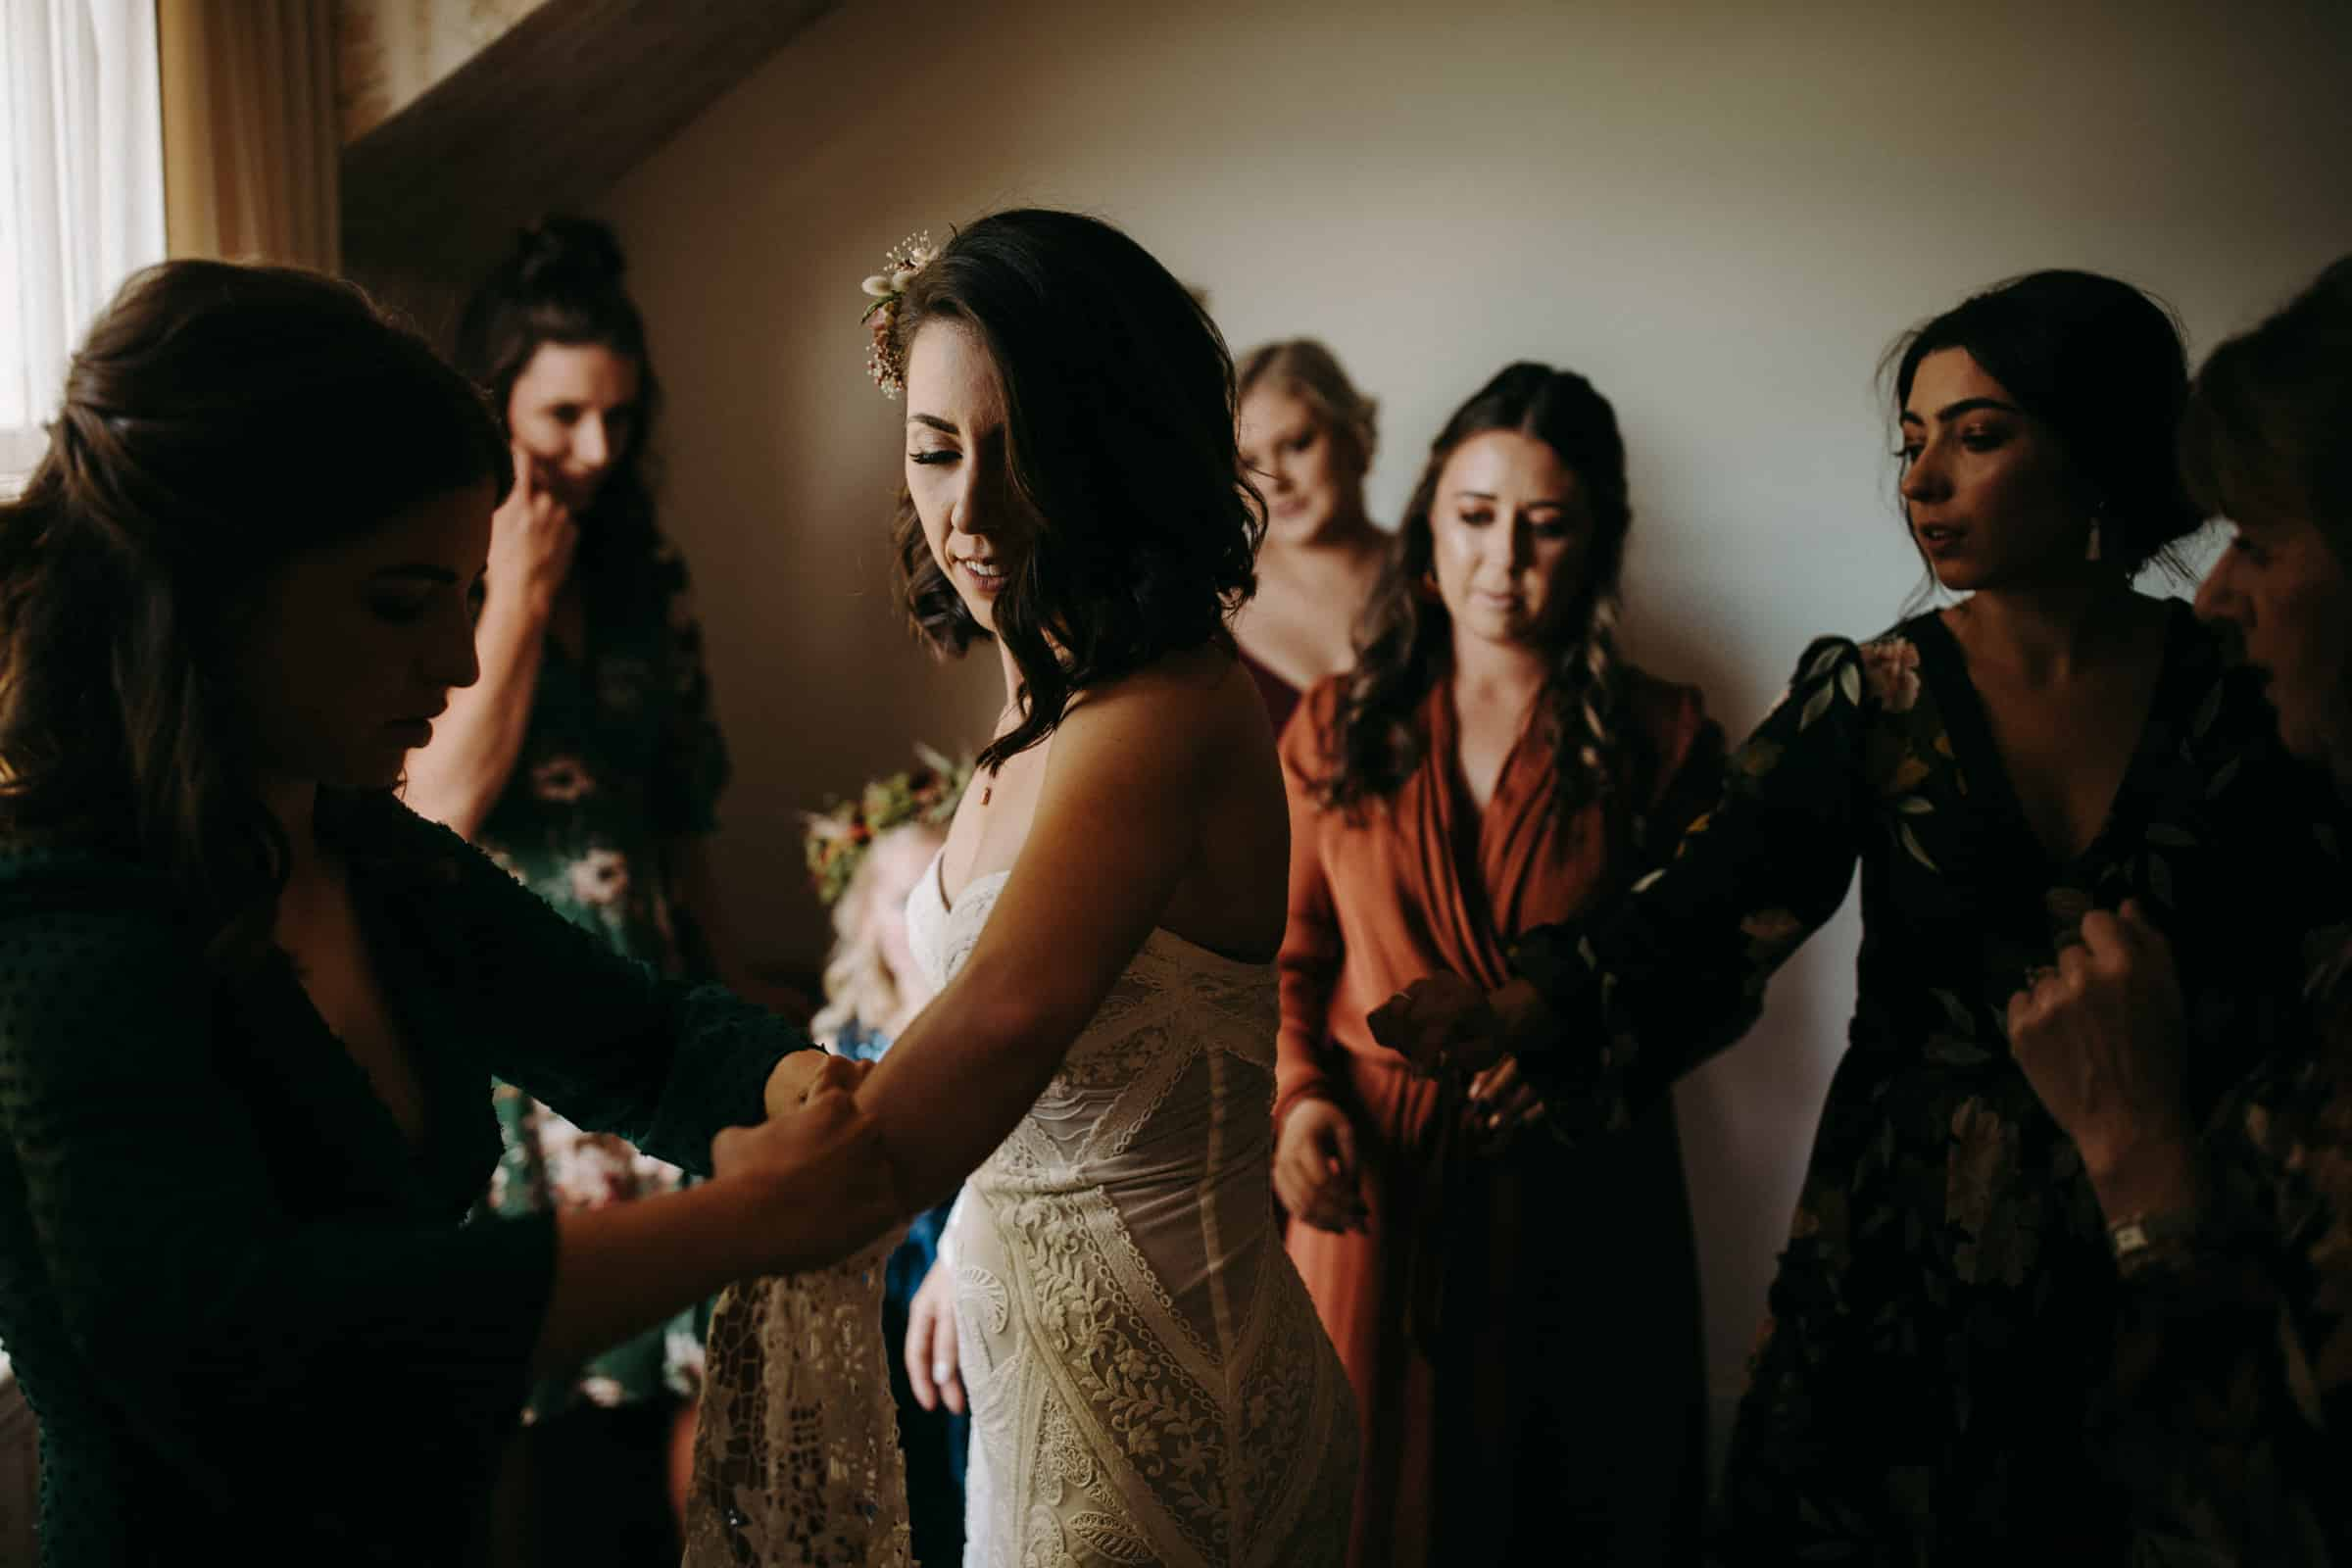 A bride is getting dressed and her bridesmaids are standing next to her.